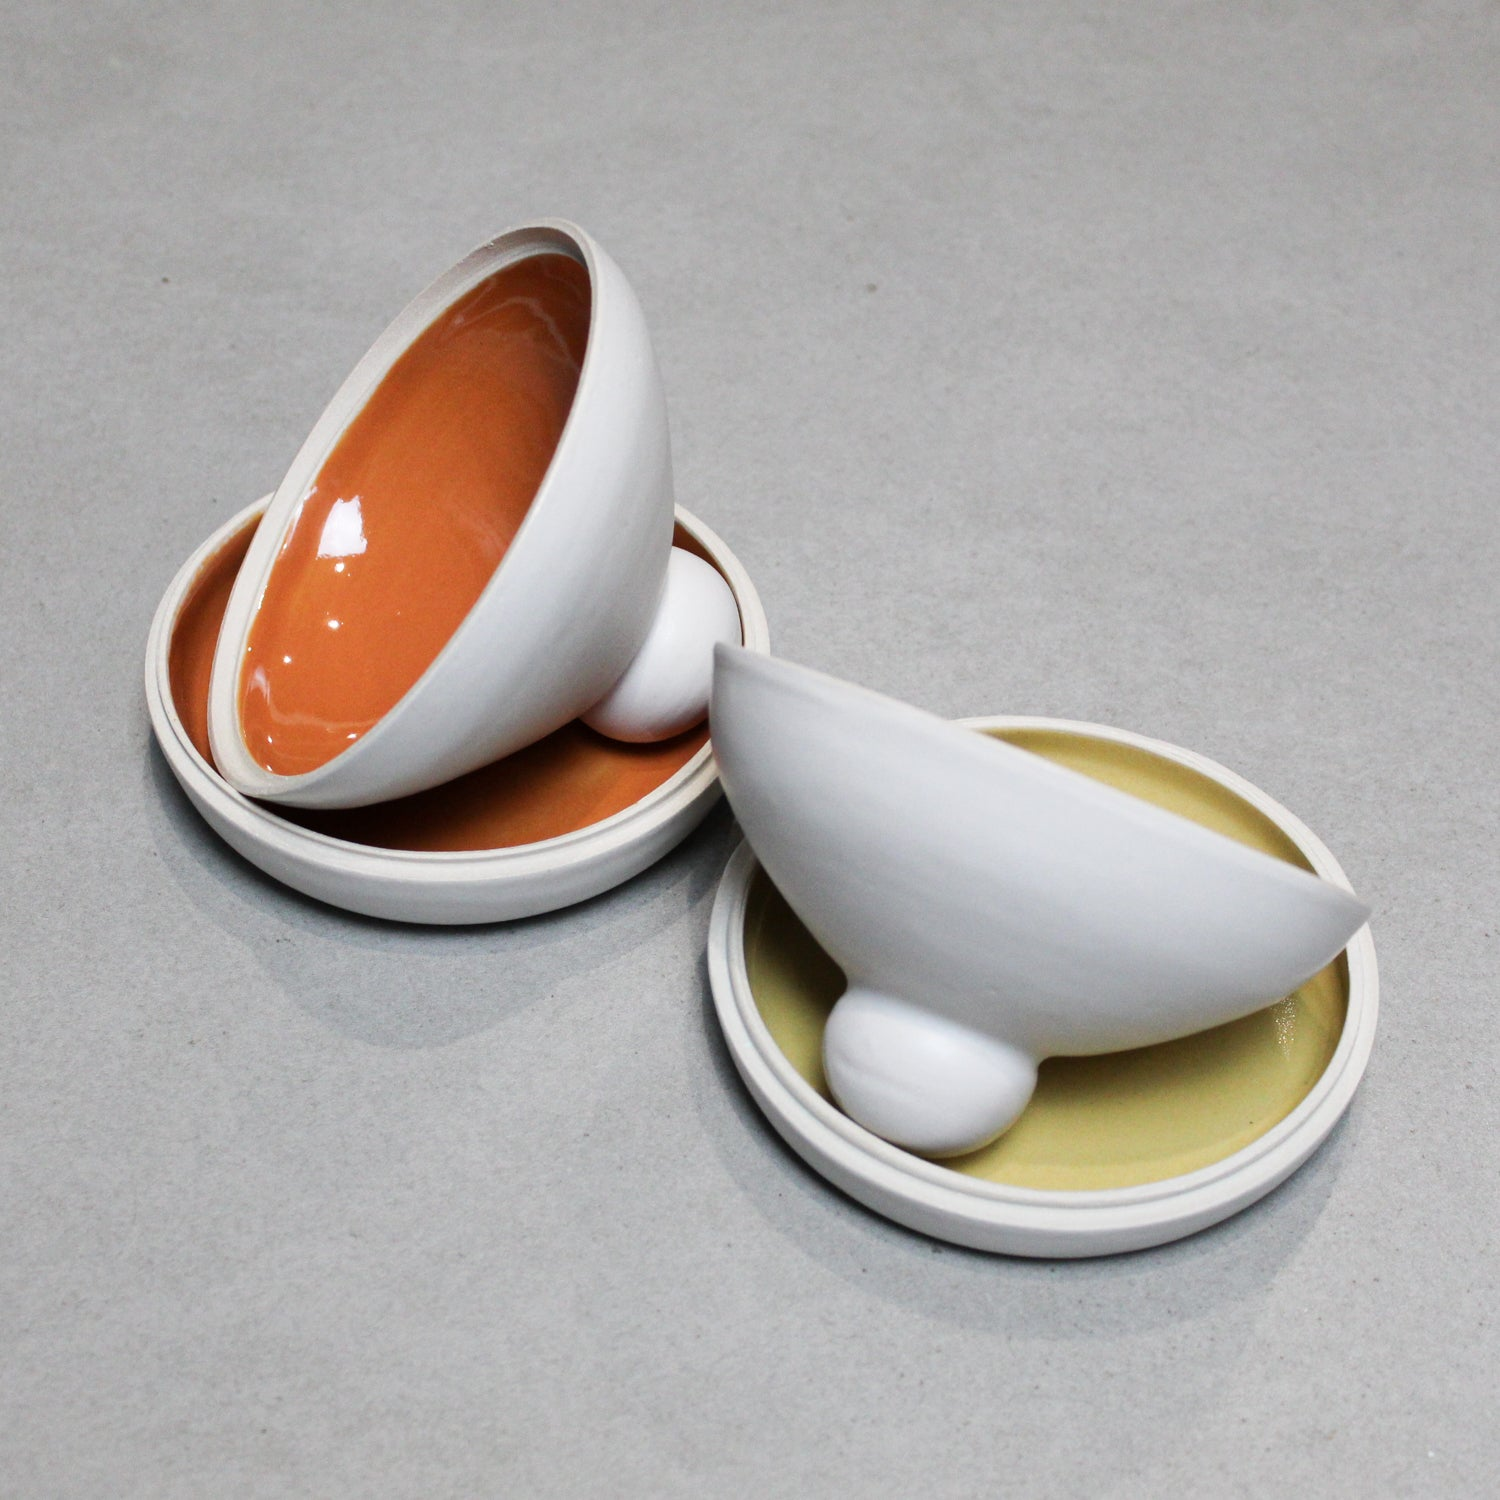 Two white pottery butter dishes. One has orange glazed inside and the other is mustard. The lids are off and inside the bases.